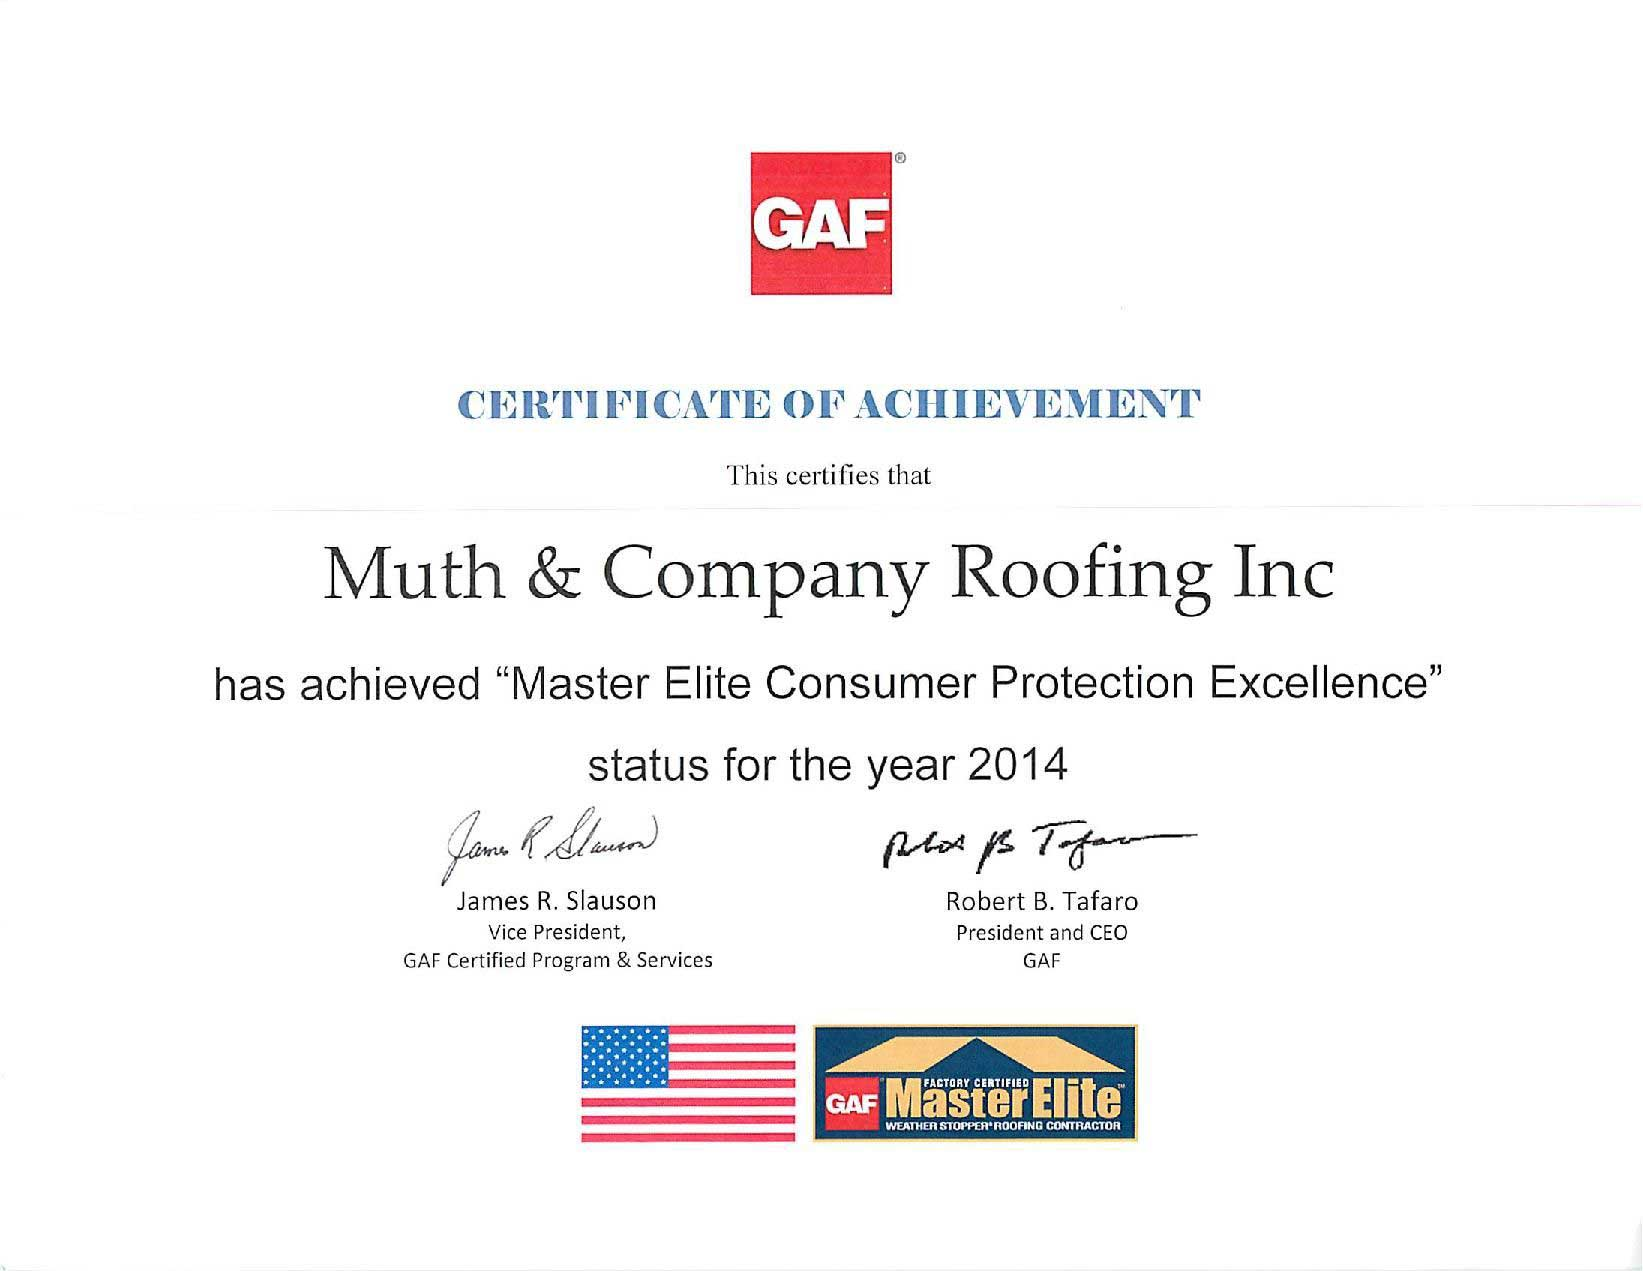 GAF-Master-Elite-Consumer-Protection-Excellence-Certificate-2014-page-compressor